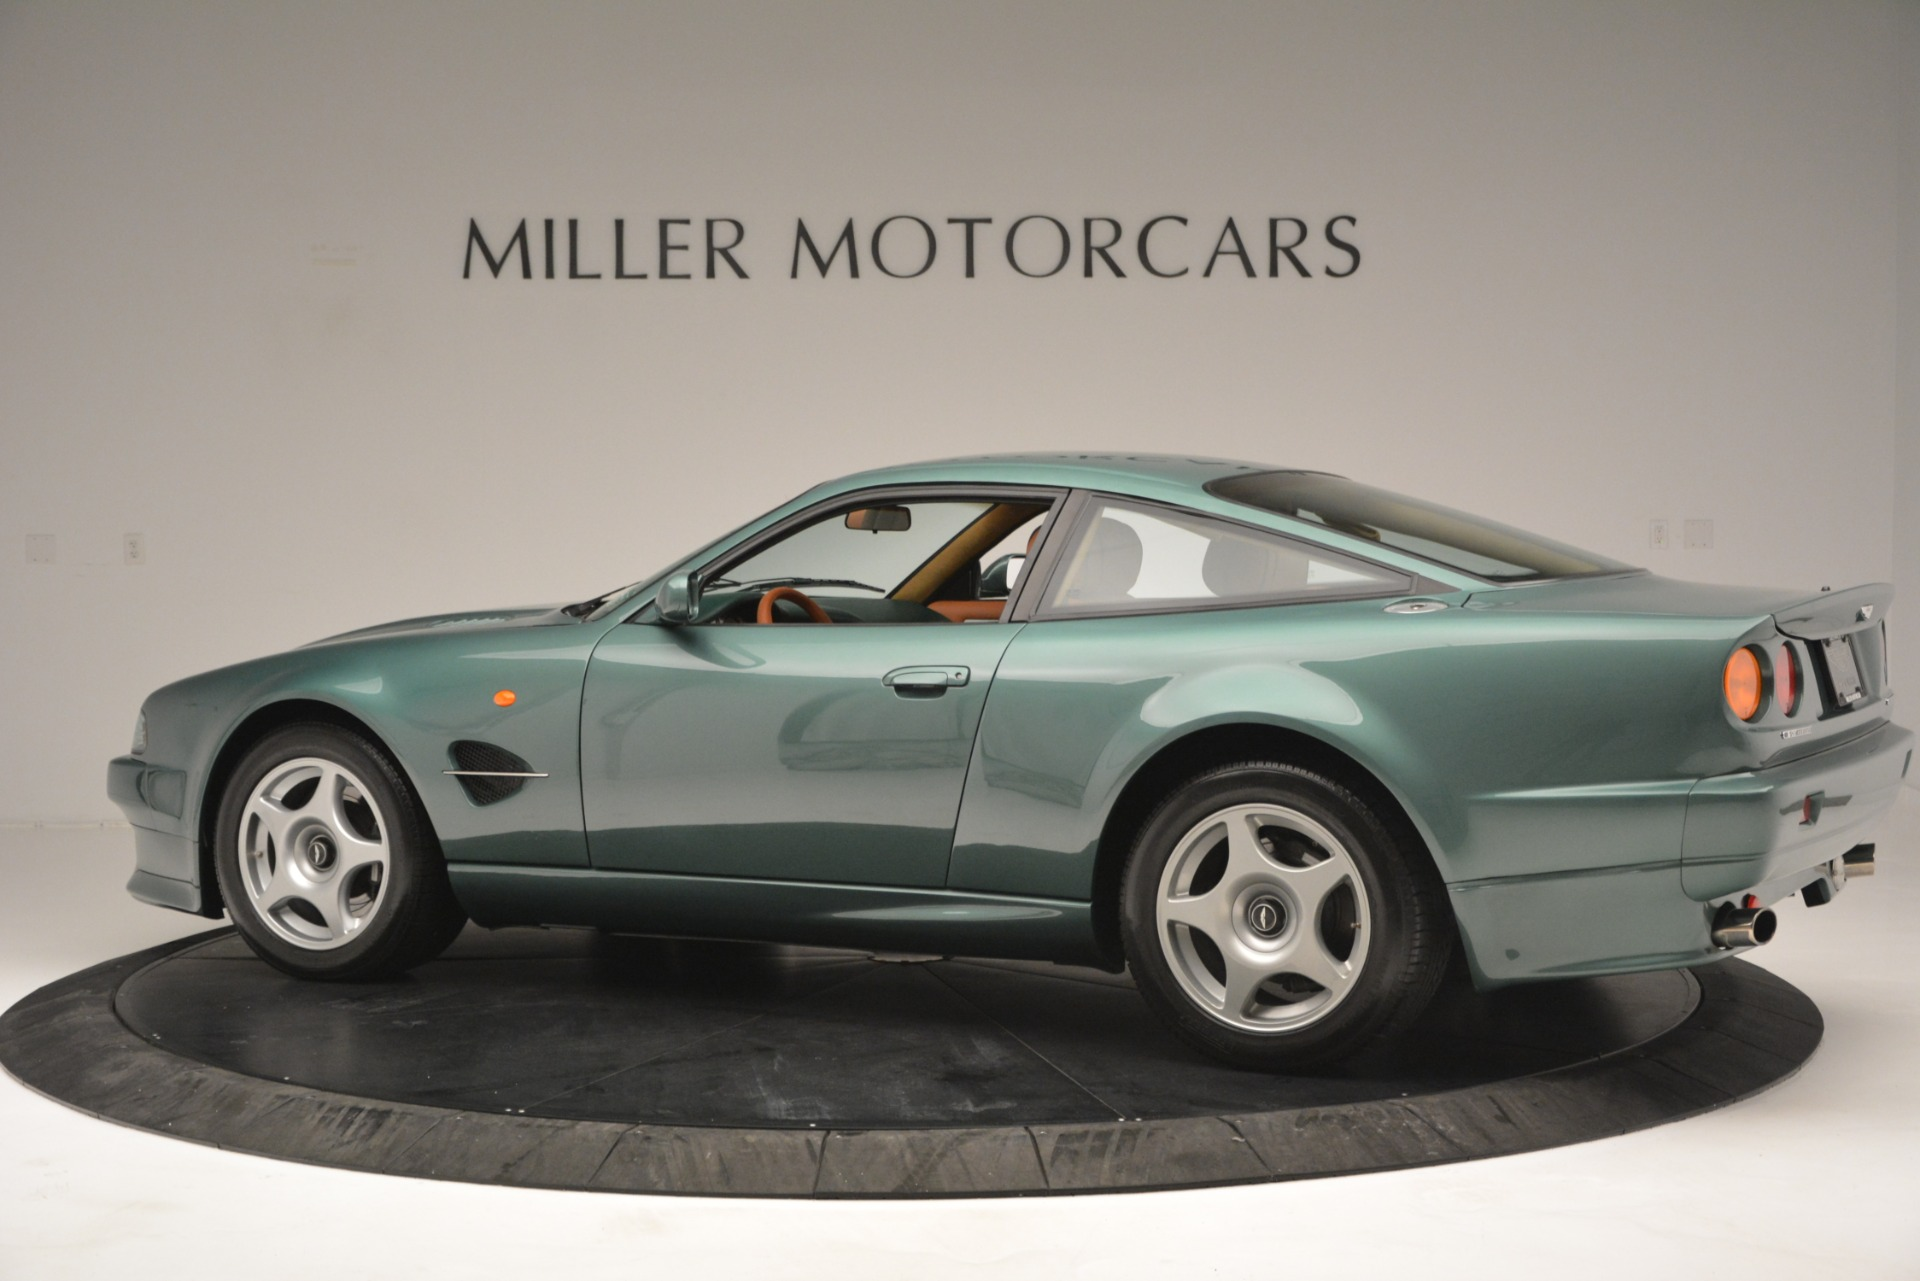 Used 1999 Aston Martin V8 Vantage Le Mans V600 Coupe For Sale In Greenwich, CT 2789_p5